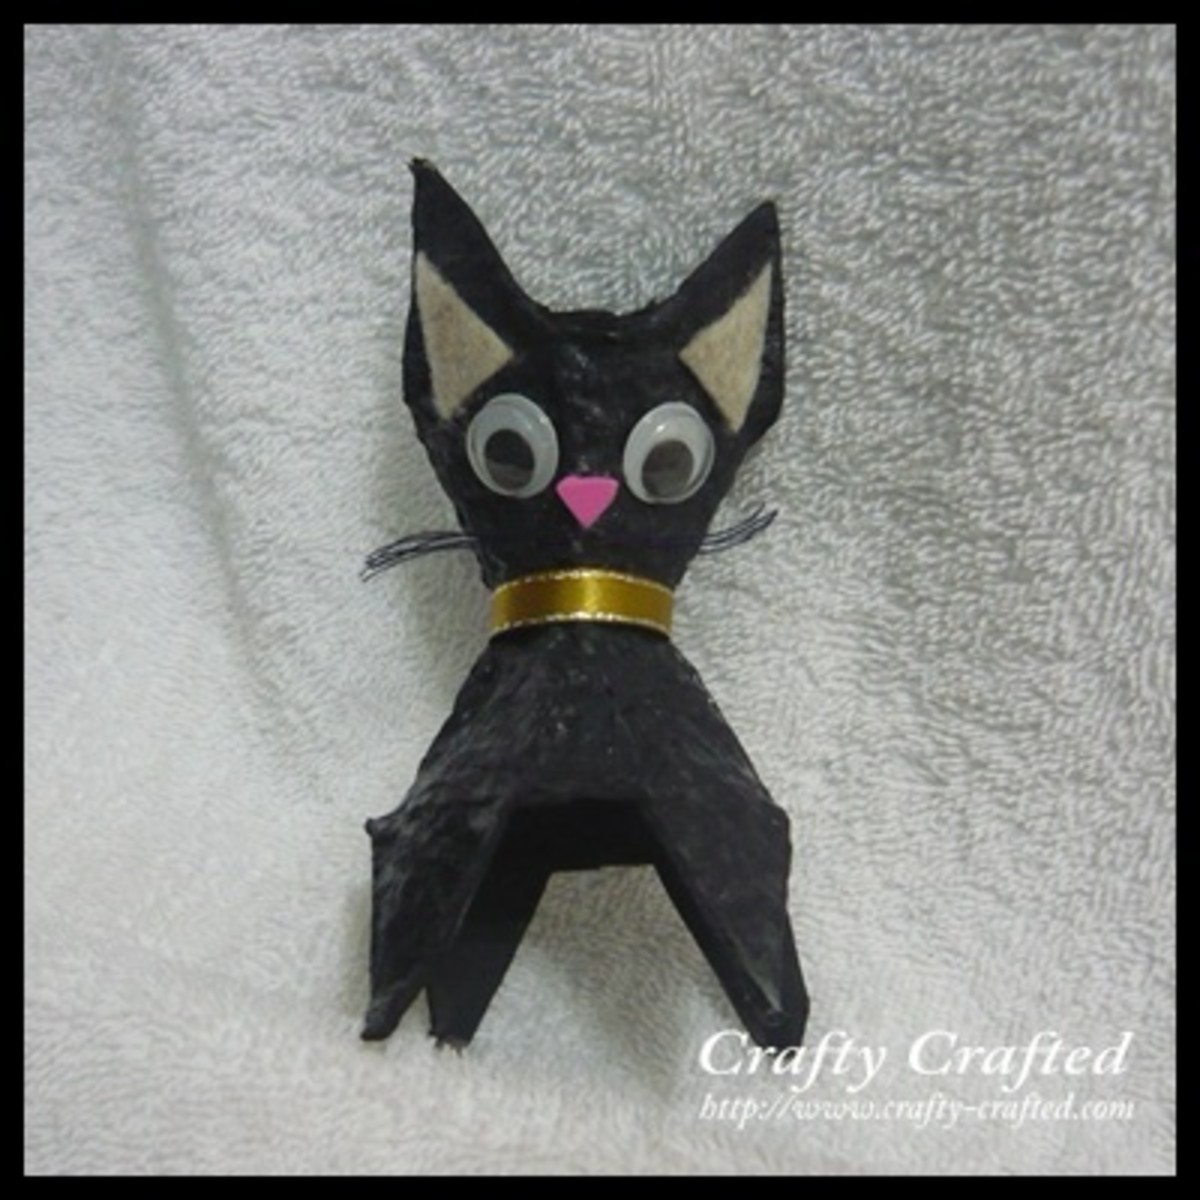 This cat craft is made from an egg carton.  It's easy and fun for kids.